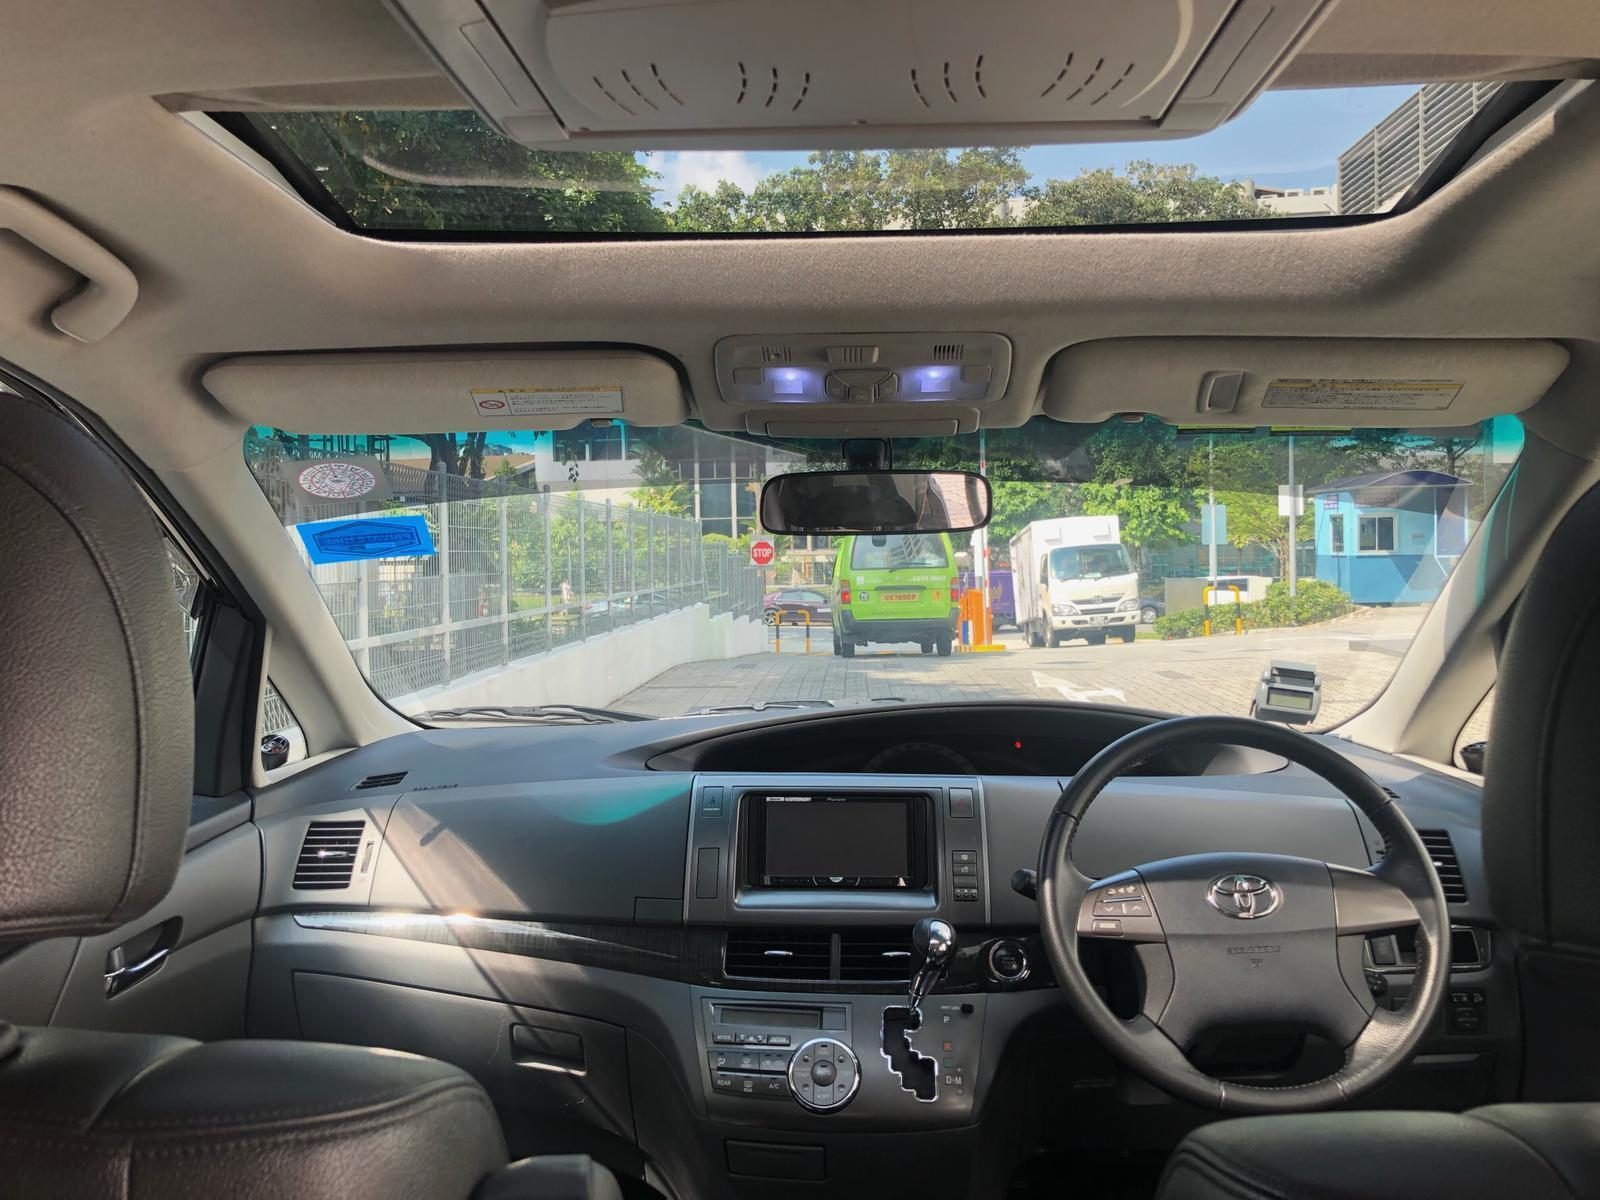 Toyota Estima SUPER CHEAP Rental for PHV GoJek Grab Ryde or Personal Use